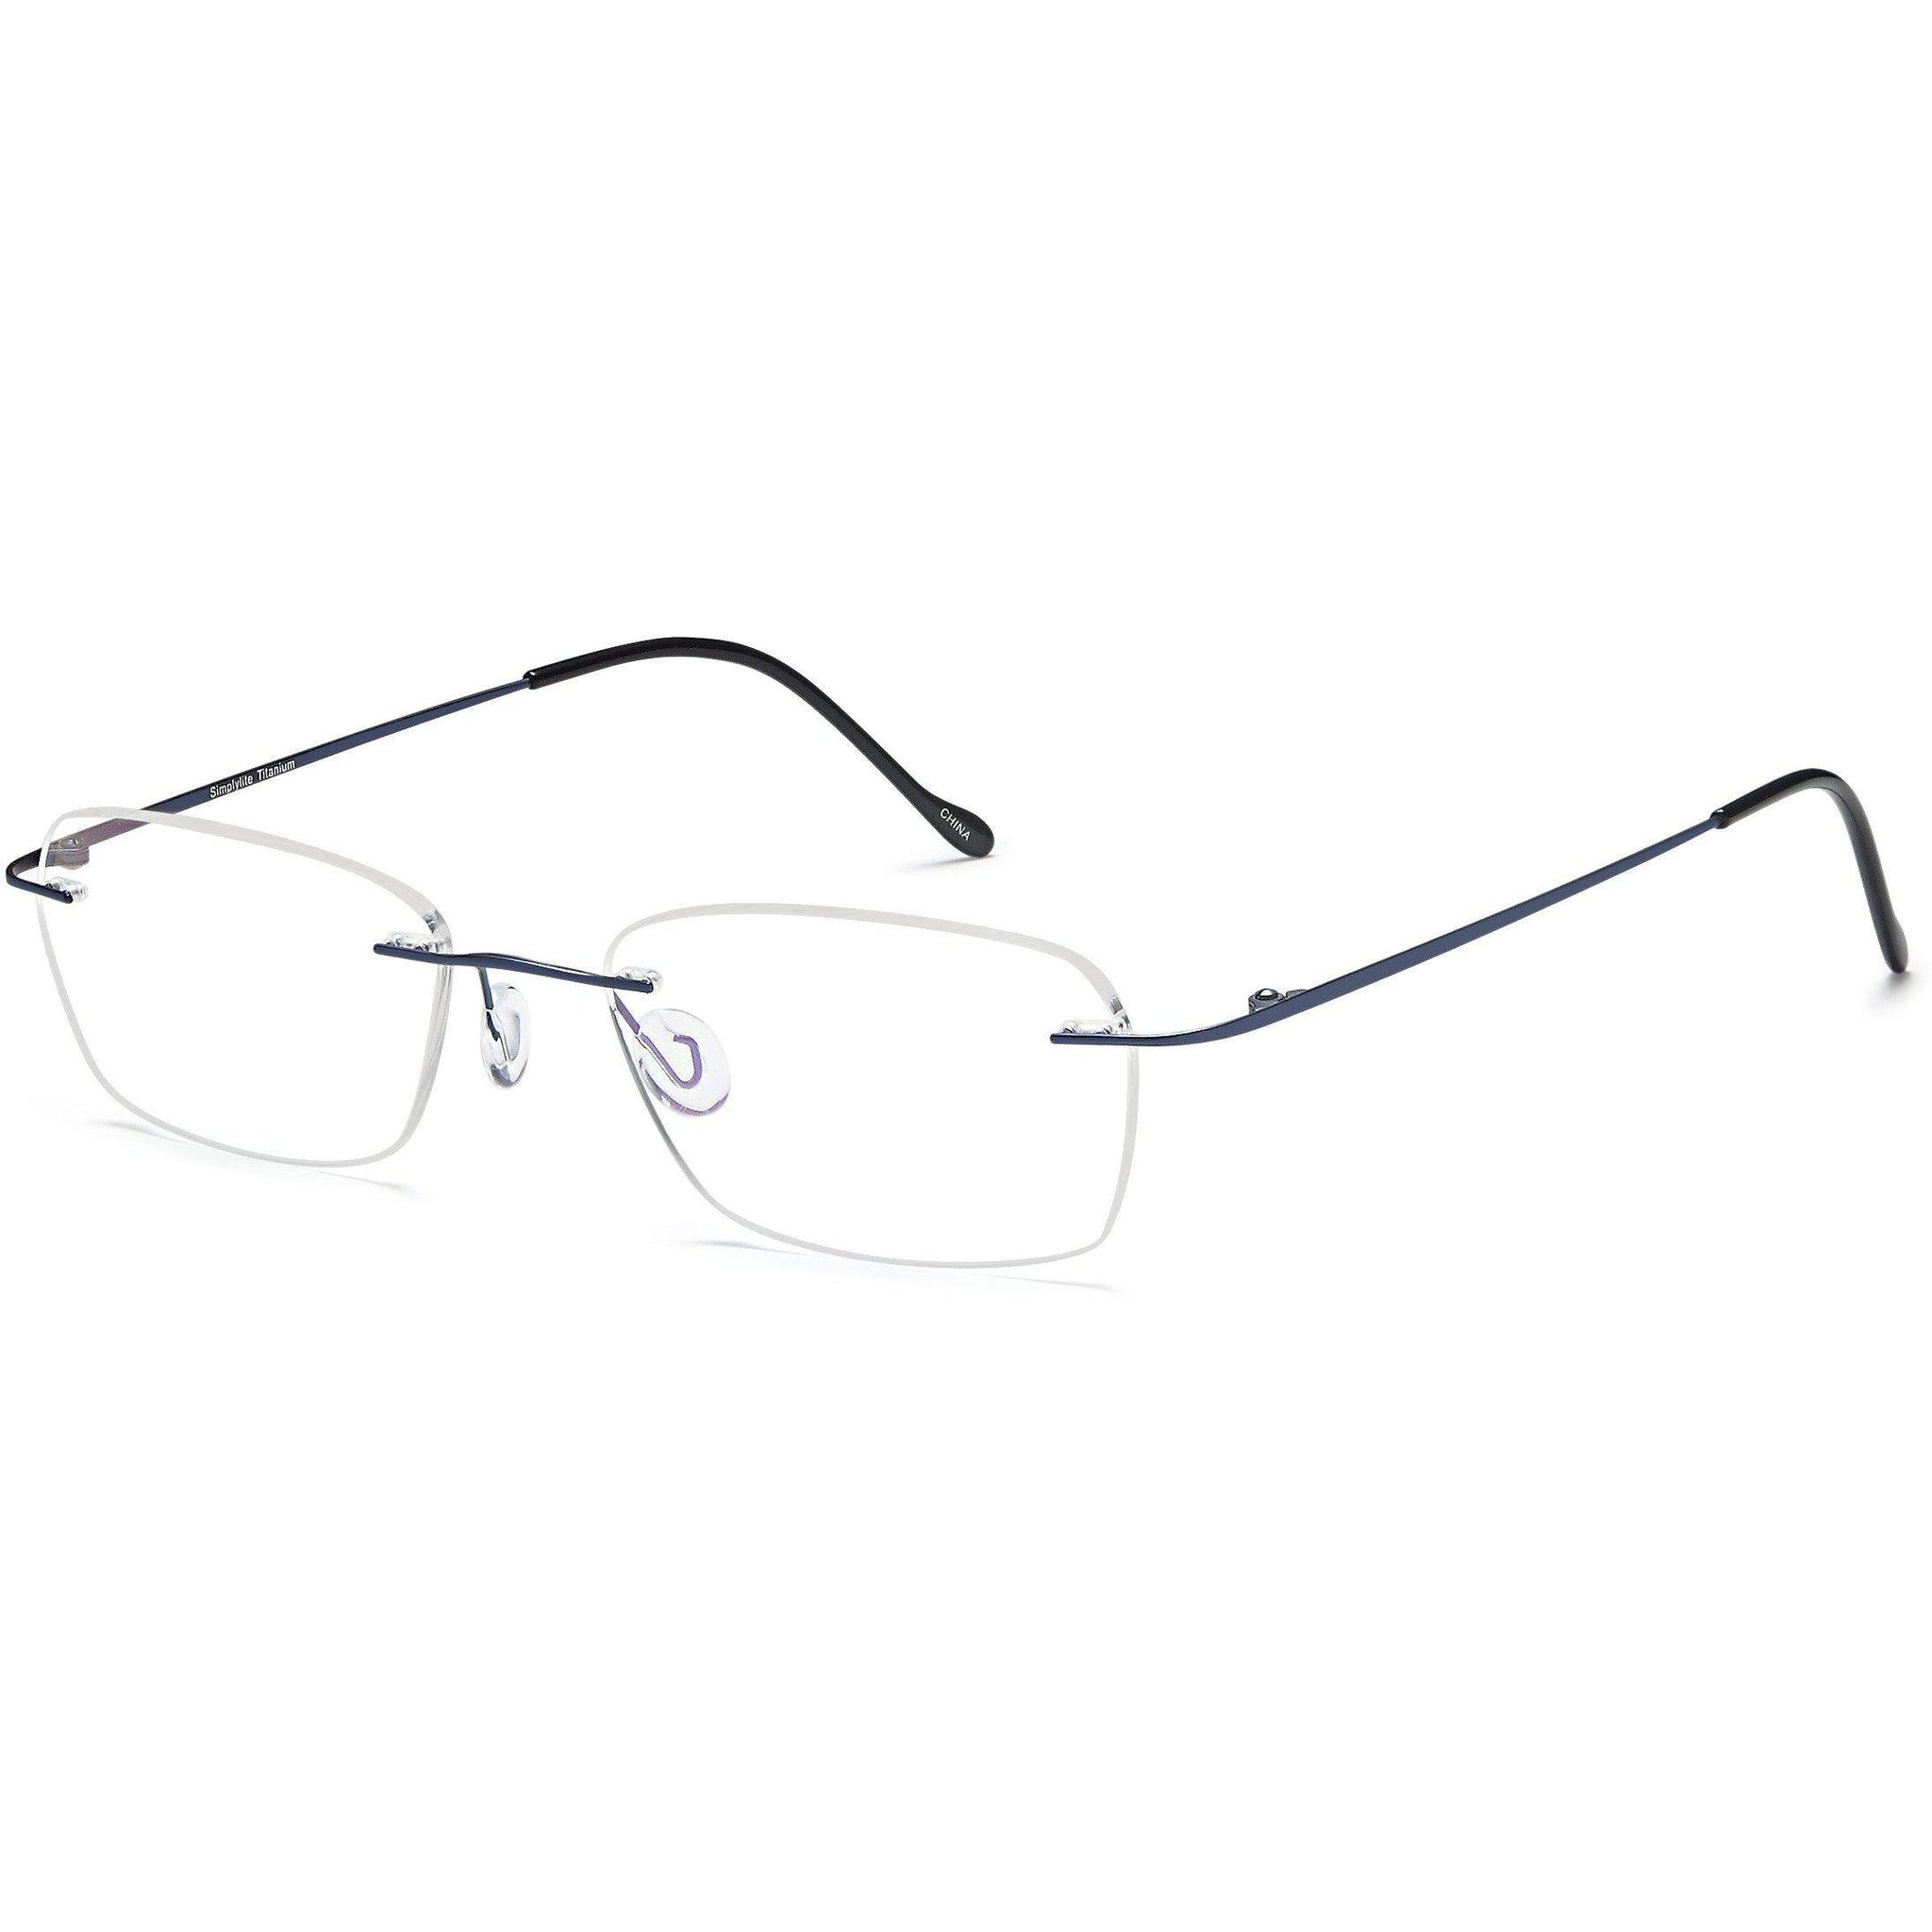 Feather Prescription Glasses SL 706 Eyeglasses Frames